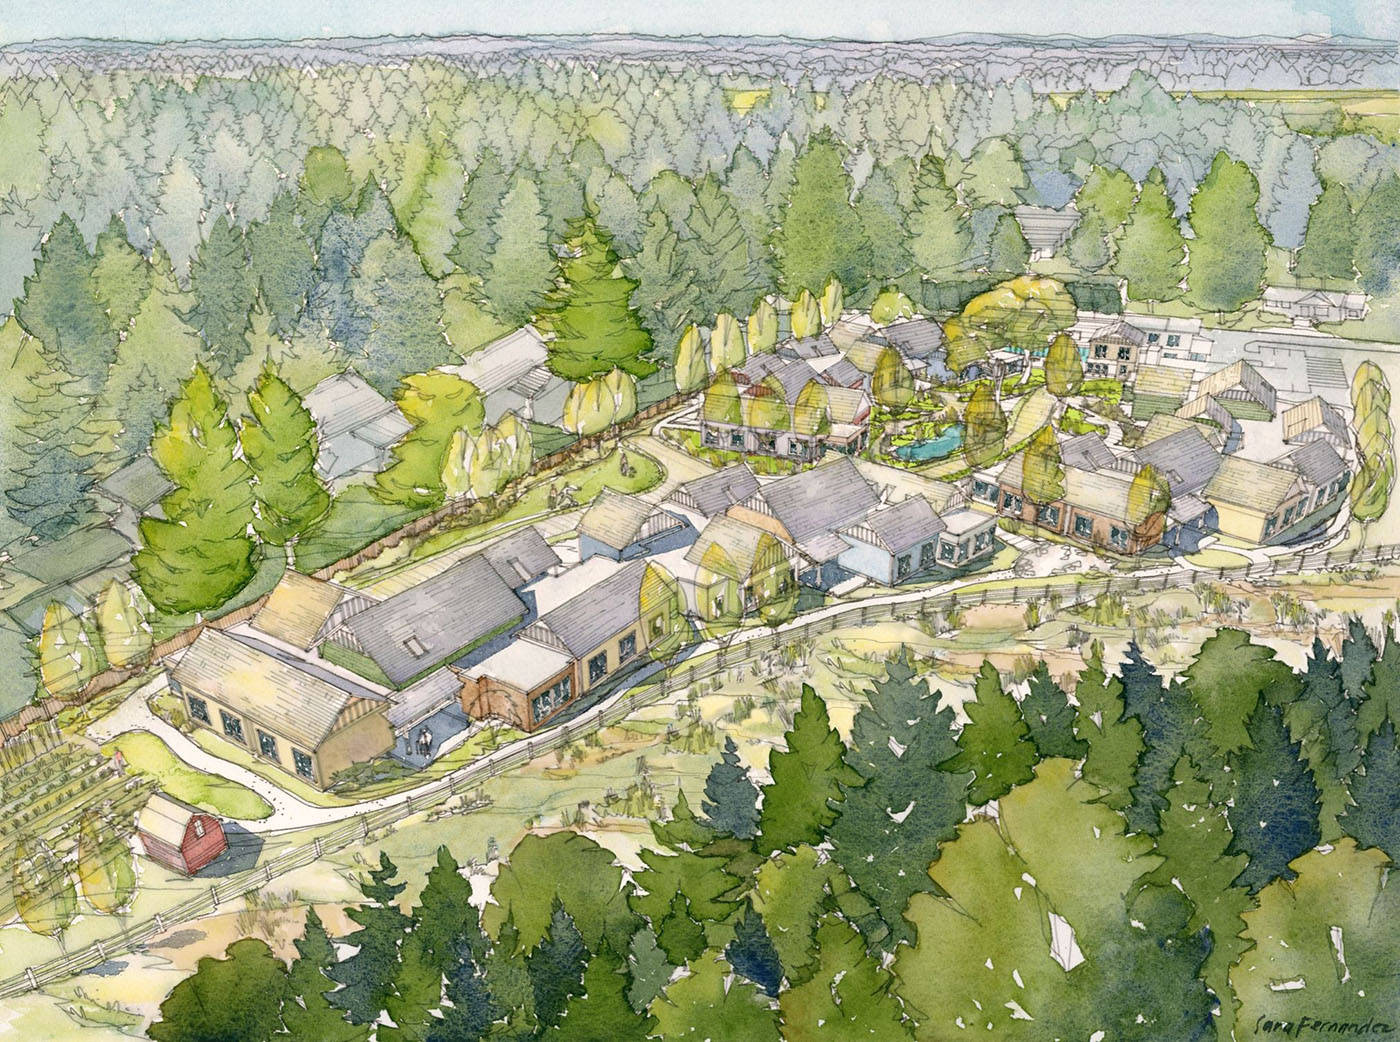 VIDEO: The Village community for dementia patients about to take shape